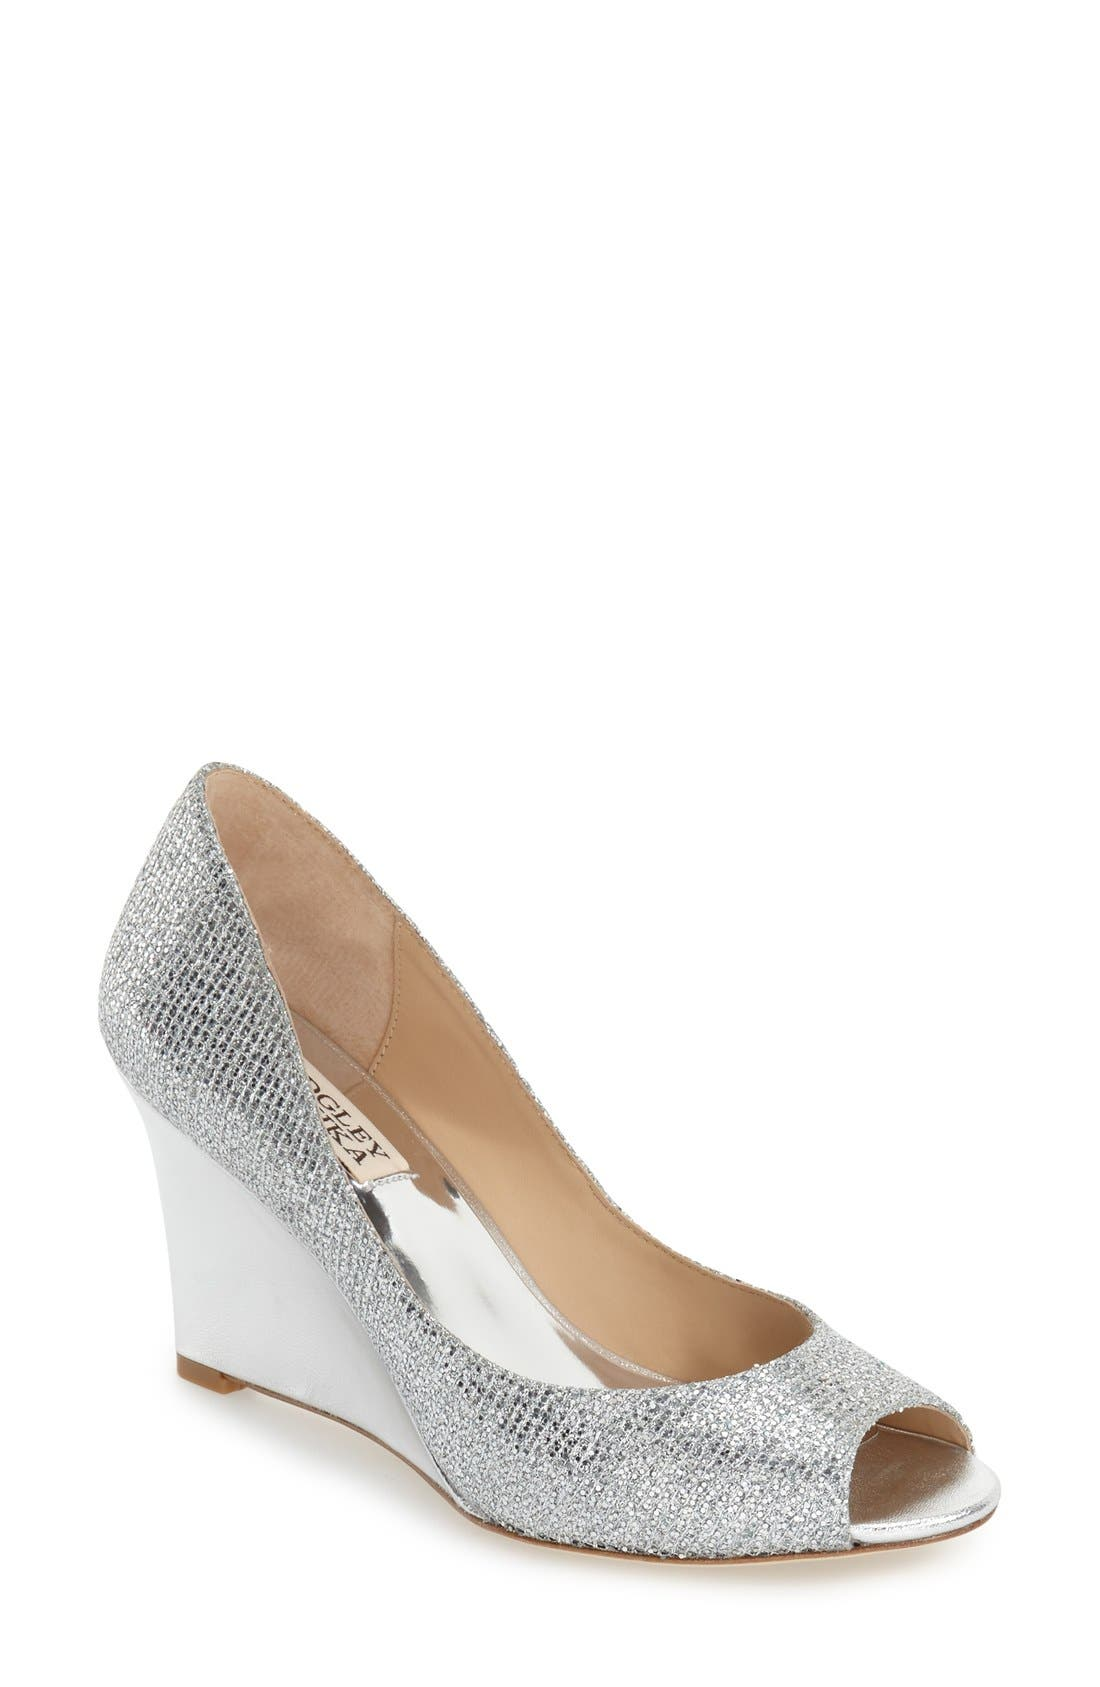 BADGLEY MISCHKA Awake Embellished Peep Toe Wedge Pump